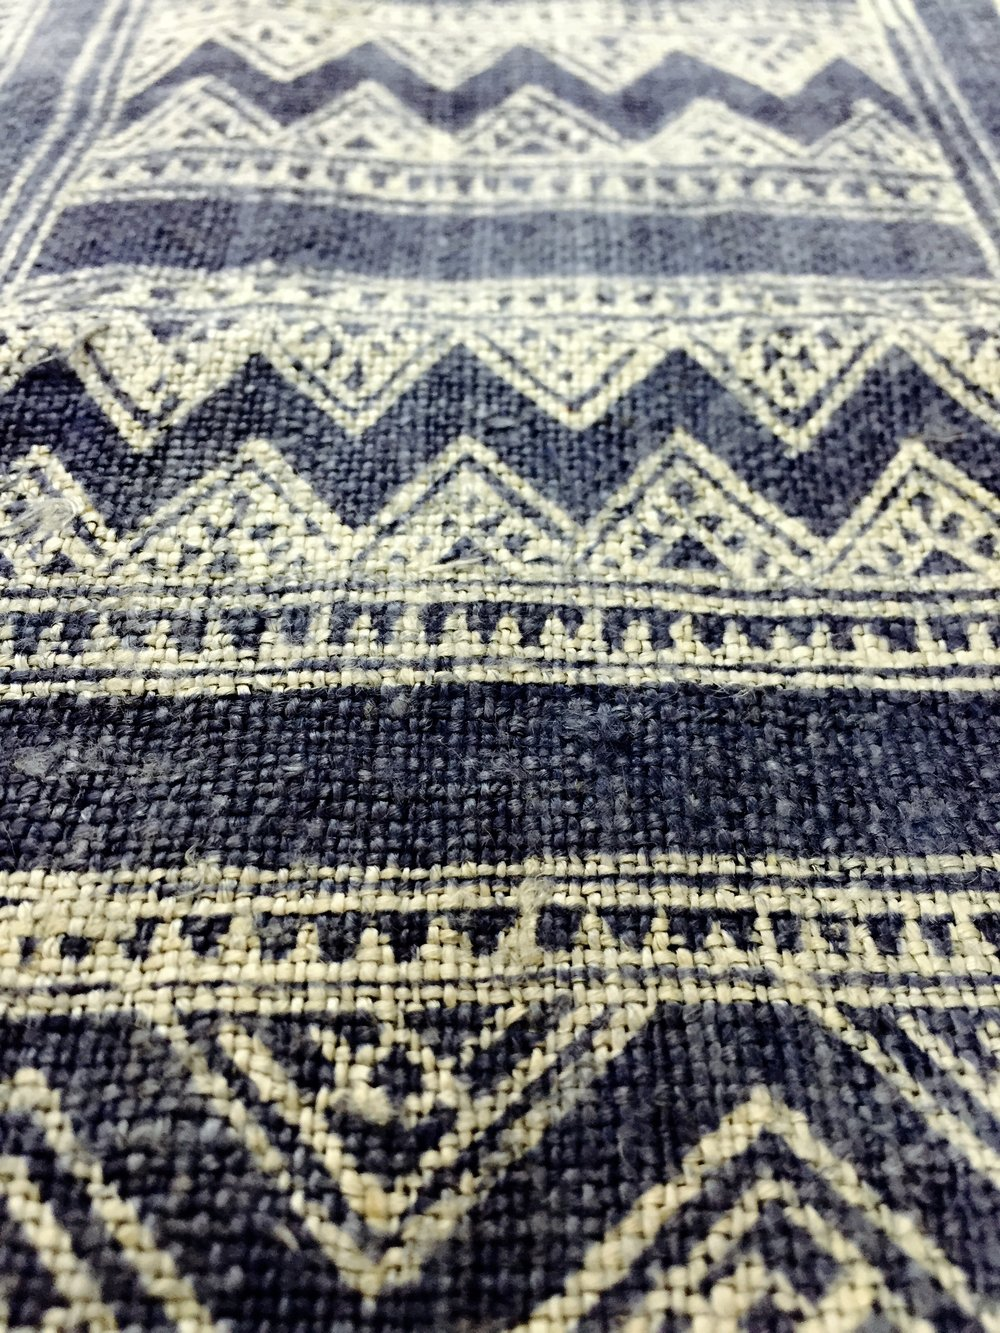 Hemp textile weave with applied batik designs of the Hmong ethnic group in Northern Laos, part of an initiative of Ock Pop Tok's  Village Weaver's Project  in Luang Prabang, Laos.